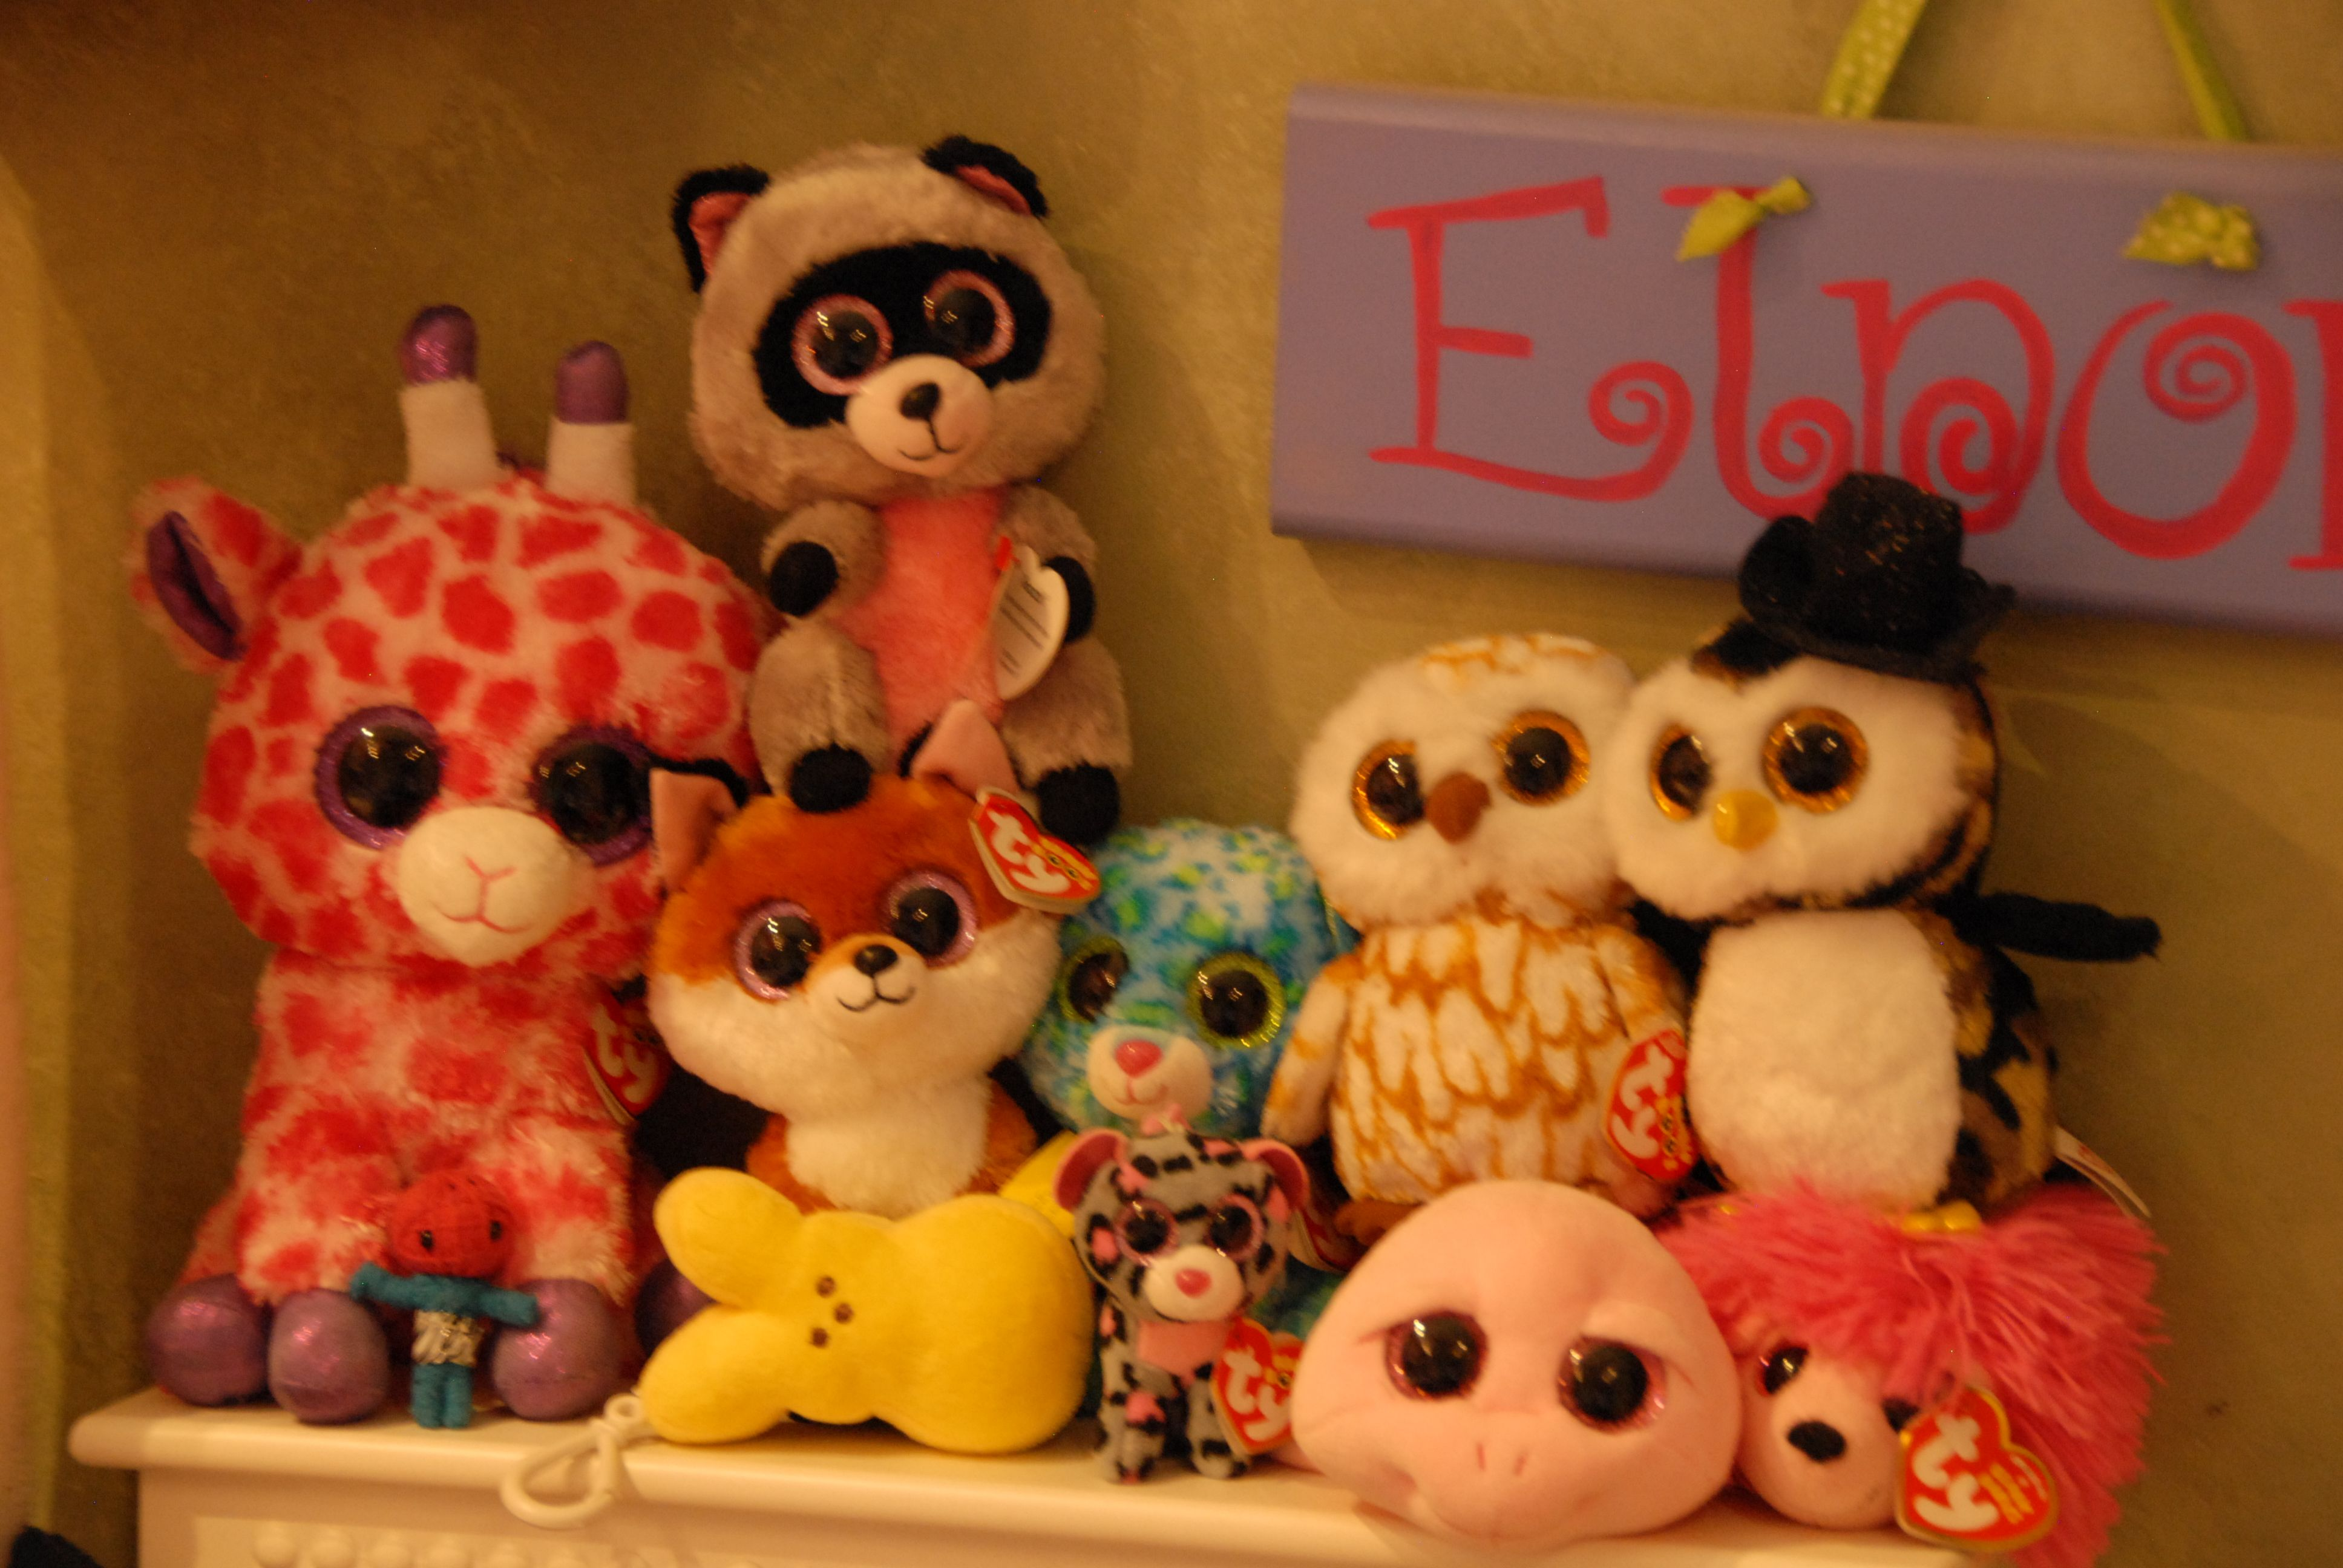 these are some of the big eyed stuffed animal that i own. i have 57 in total!